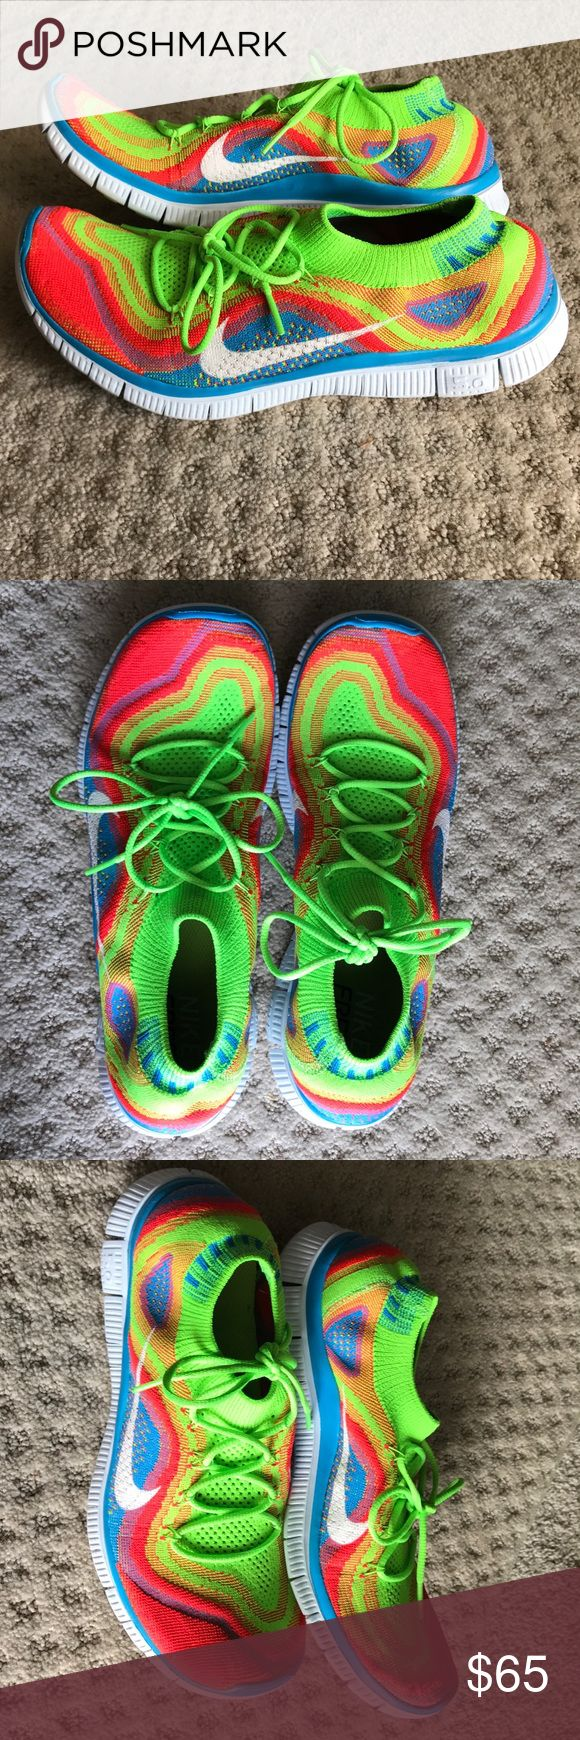 Nike Free Flyknit 5.0 rainbow Nike Free Flyknit 5.0 barefoot running shoes. Worn outside 2 or 3 times. Nike Shoes Athletic Shoes